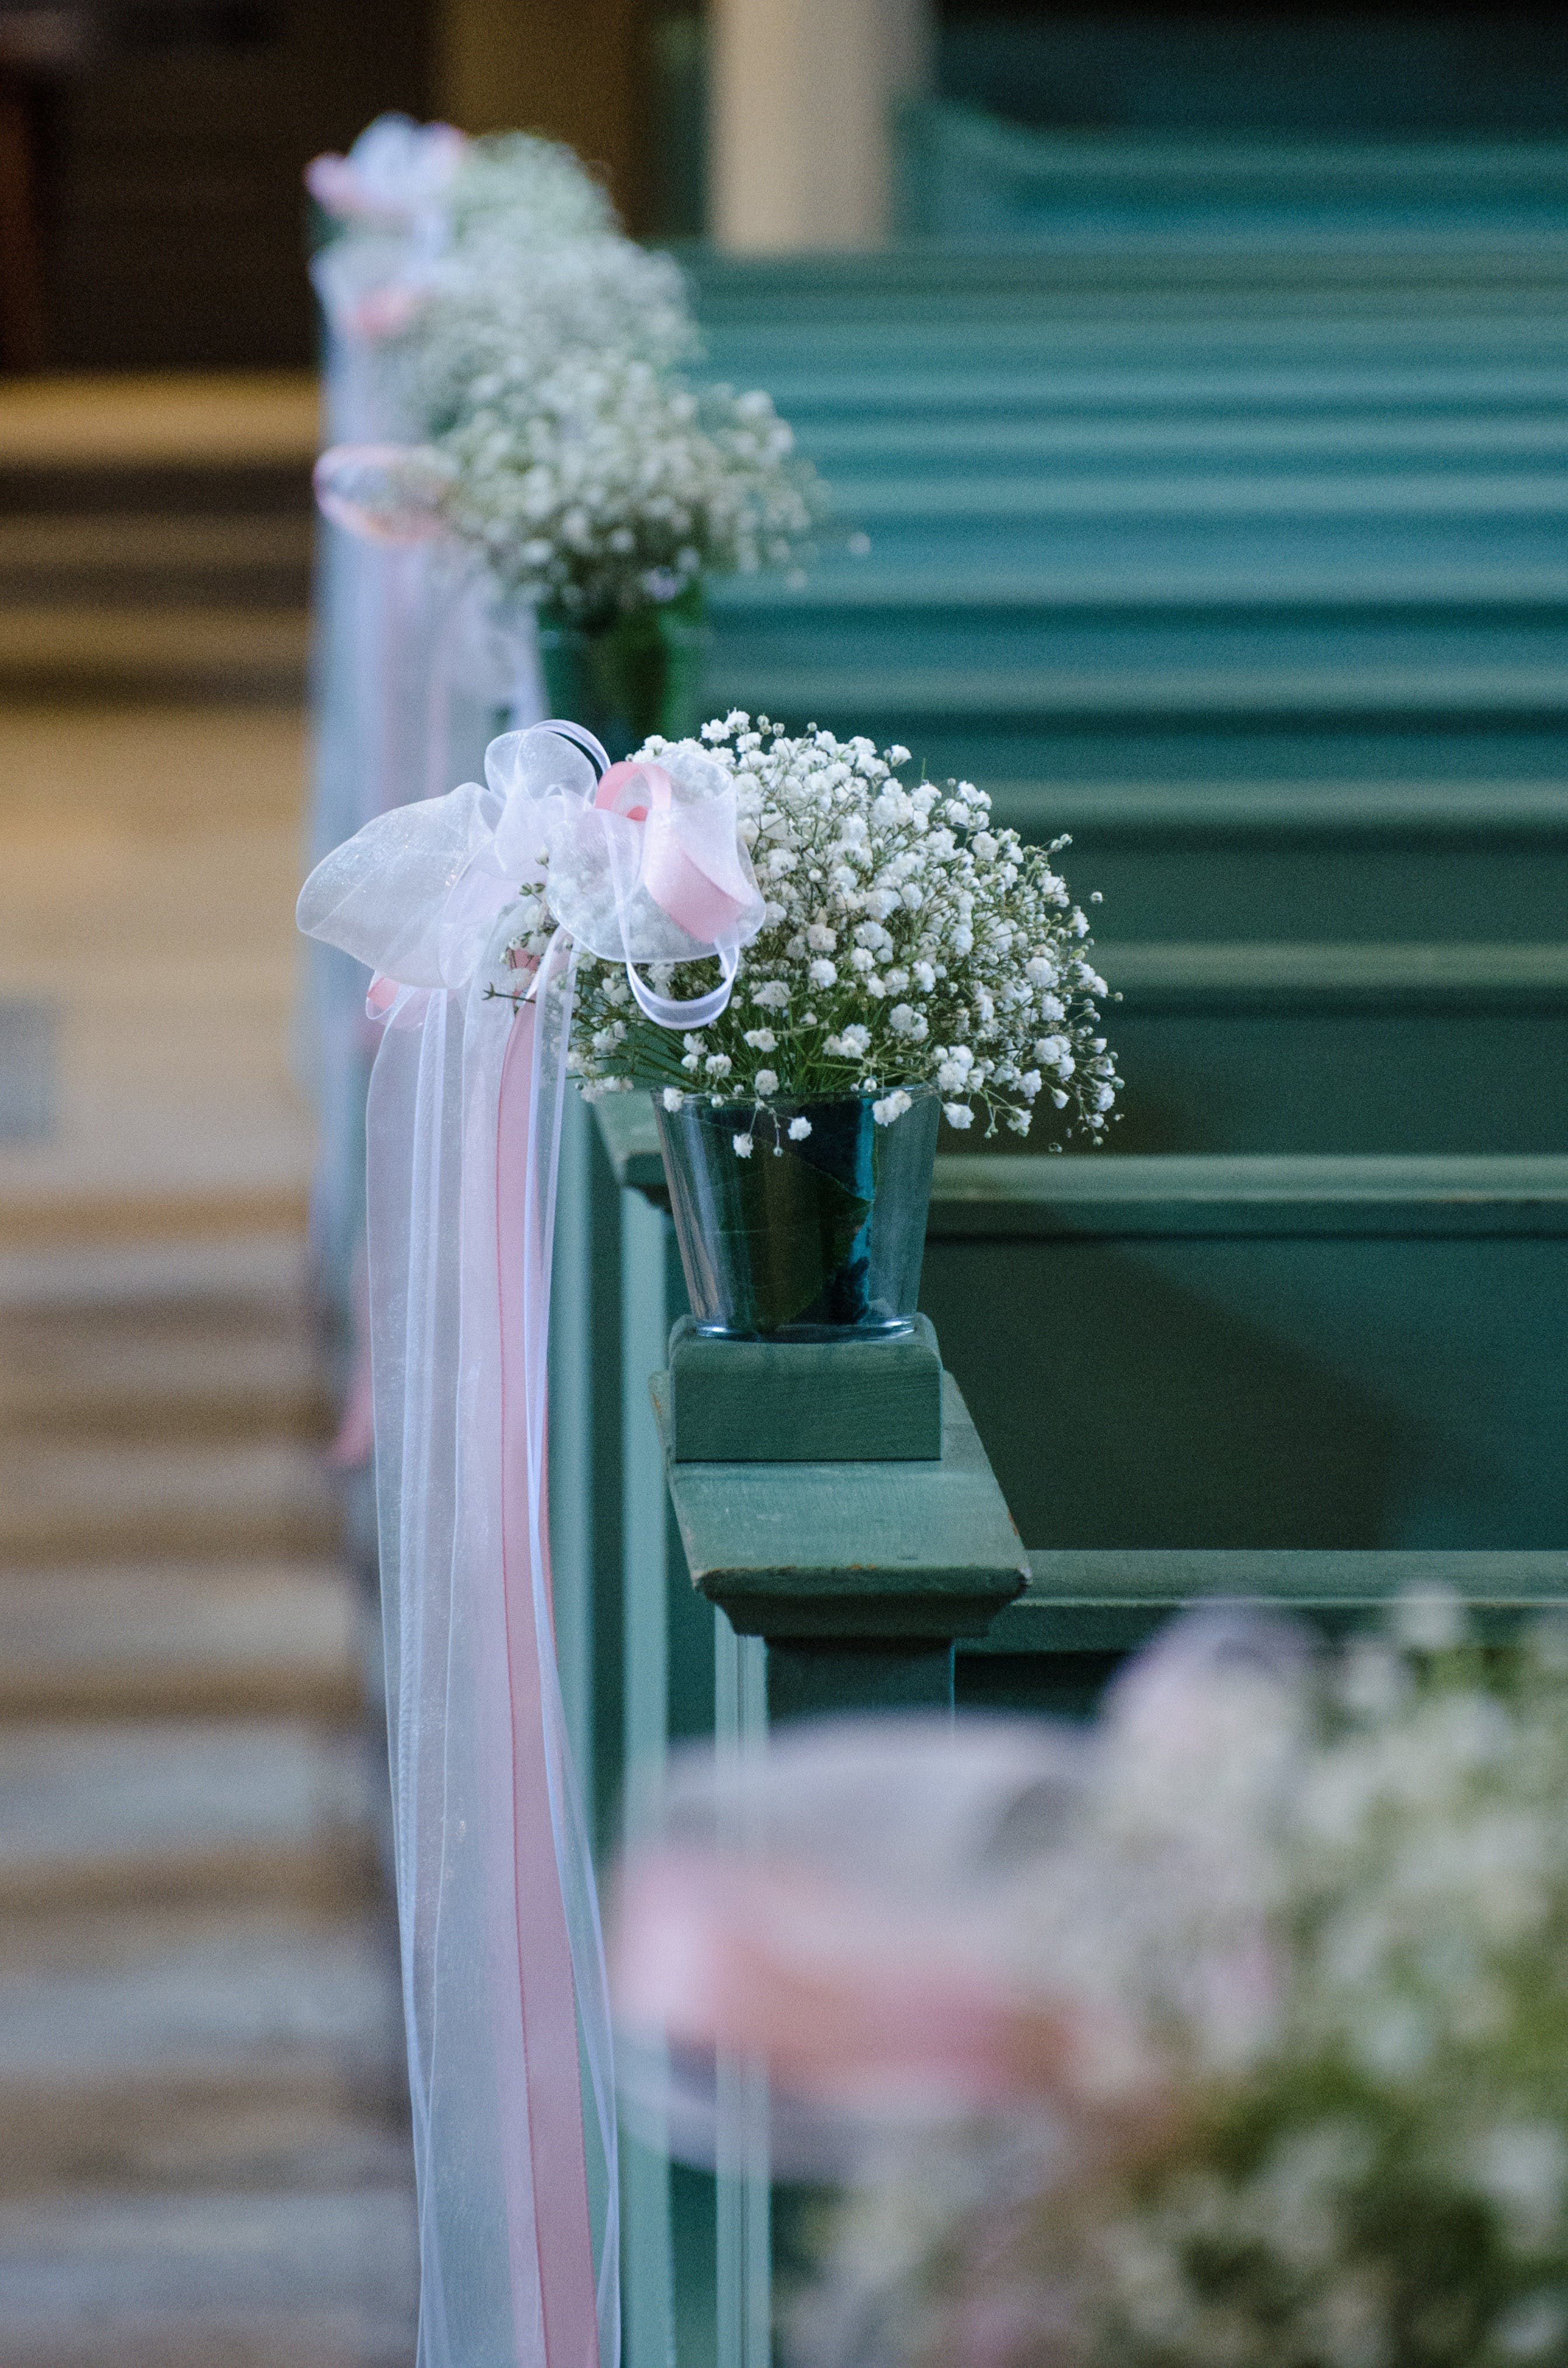 White Potted Flowers With White Textiles